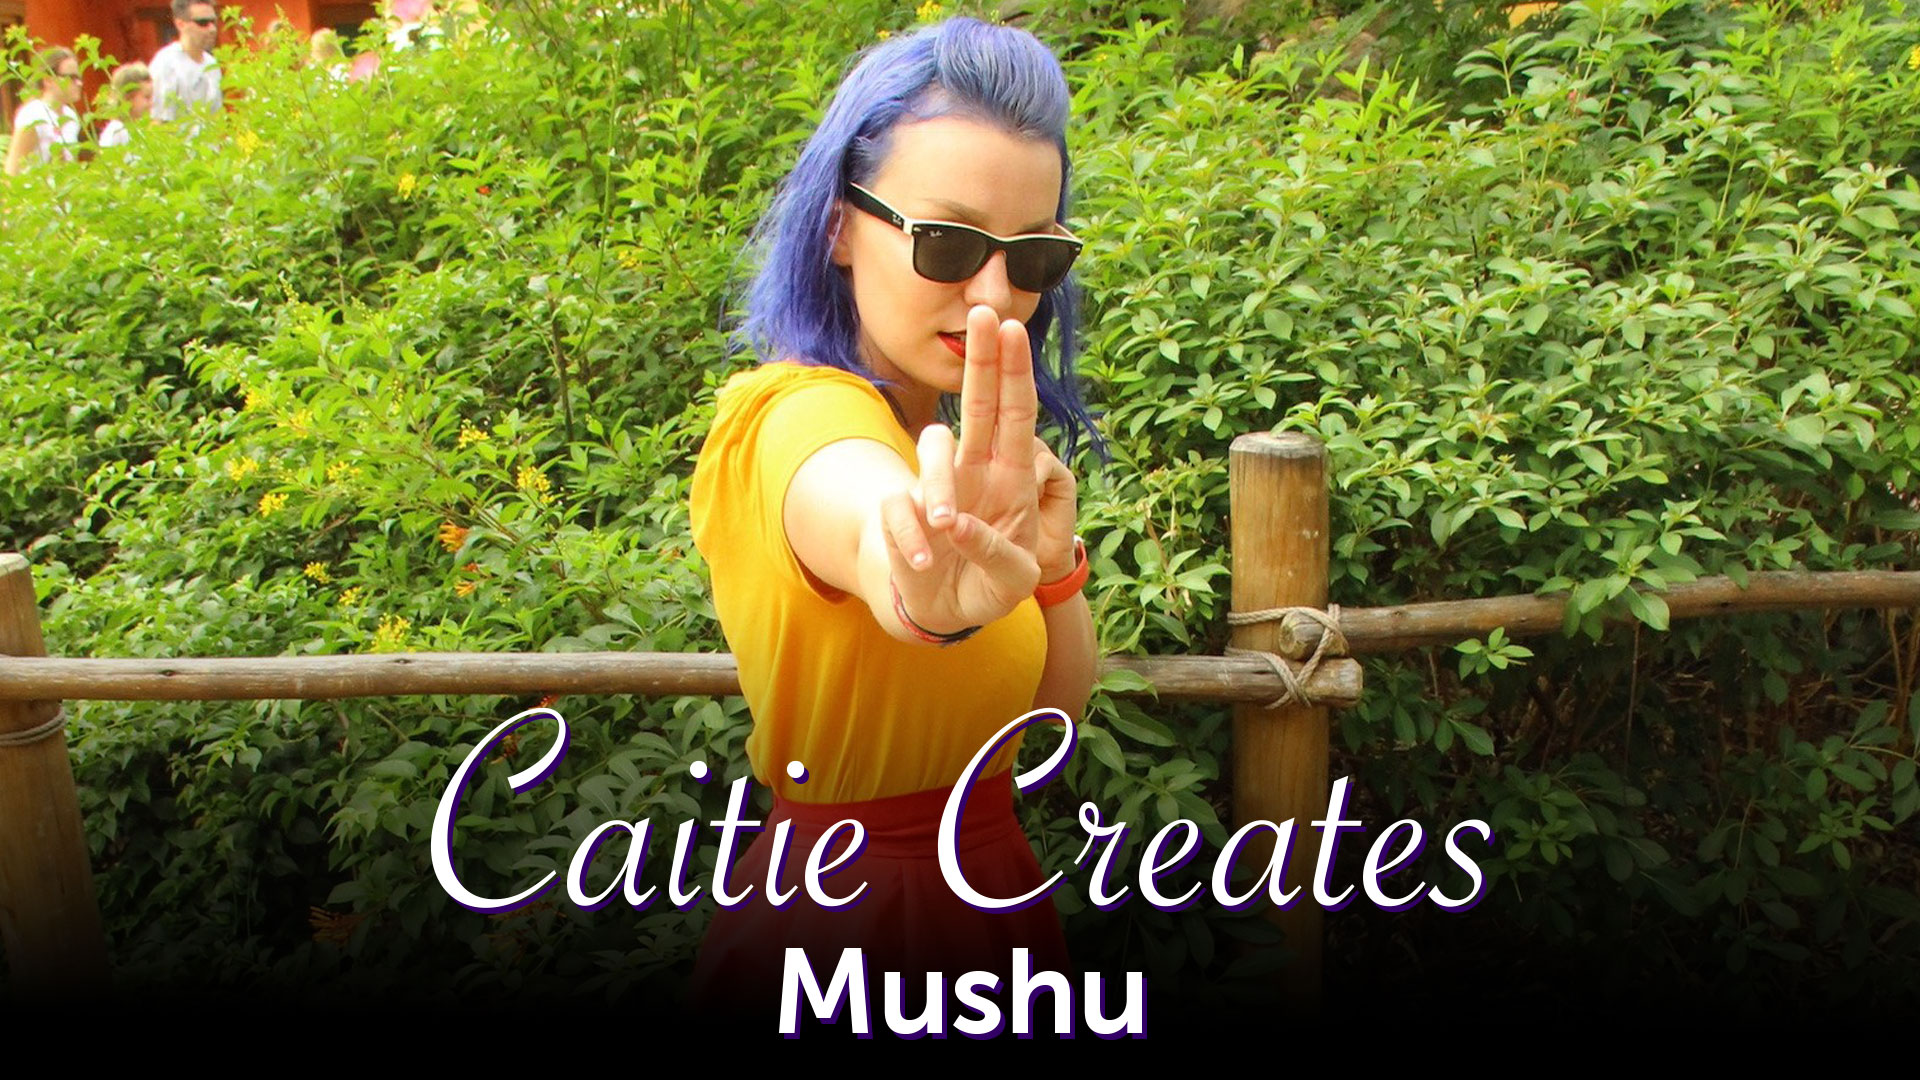 Caitie Creates - Mushu Disneybound